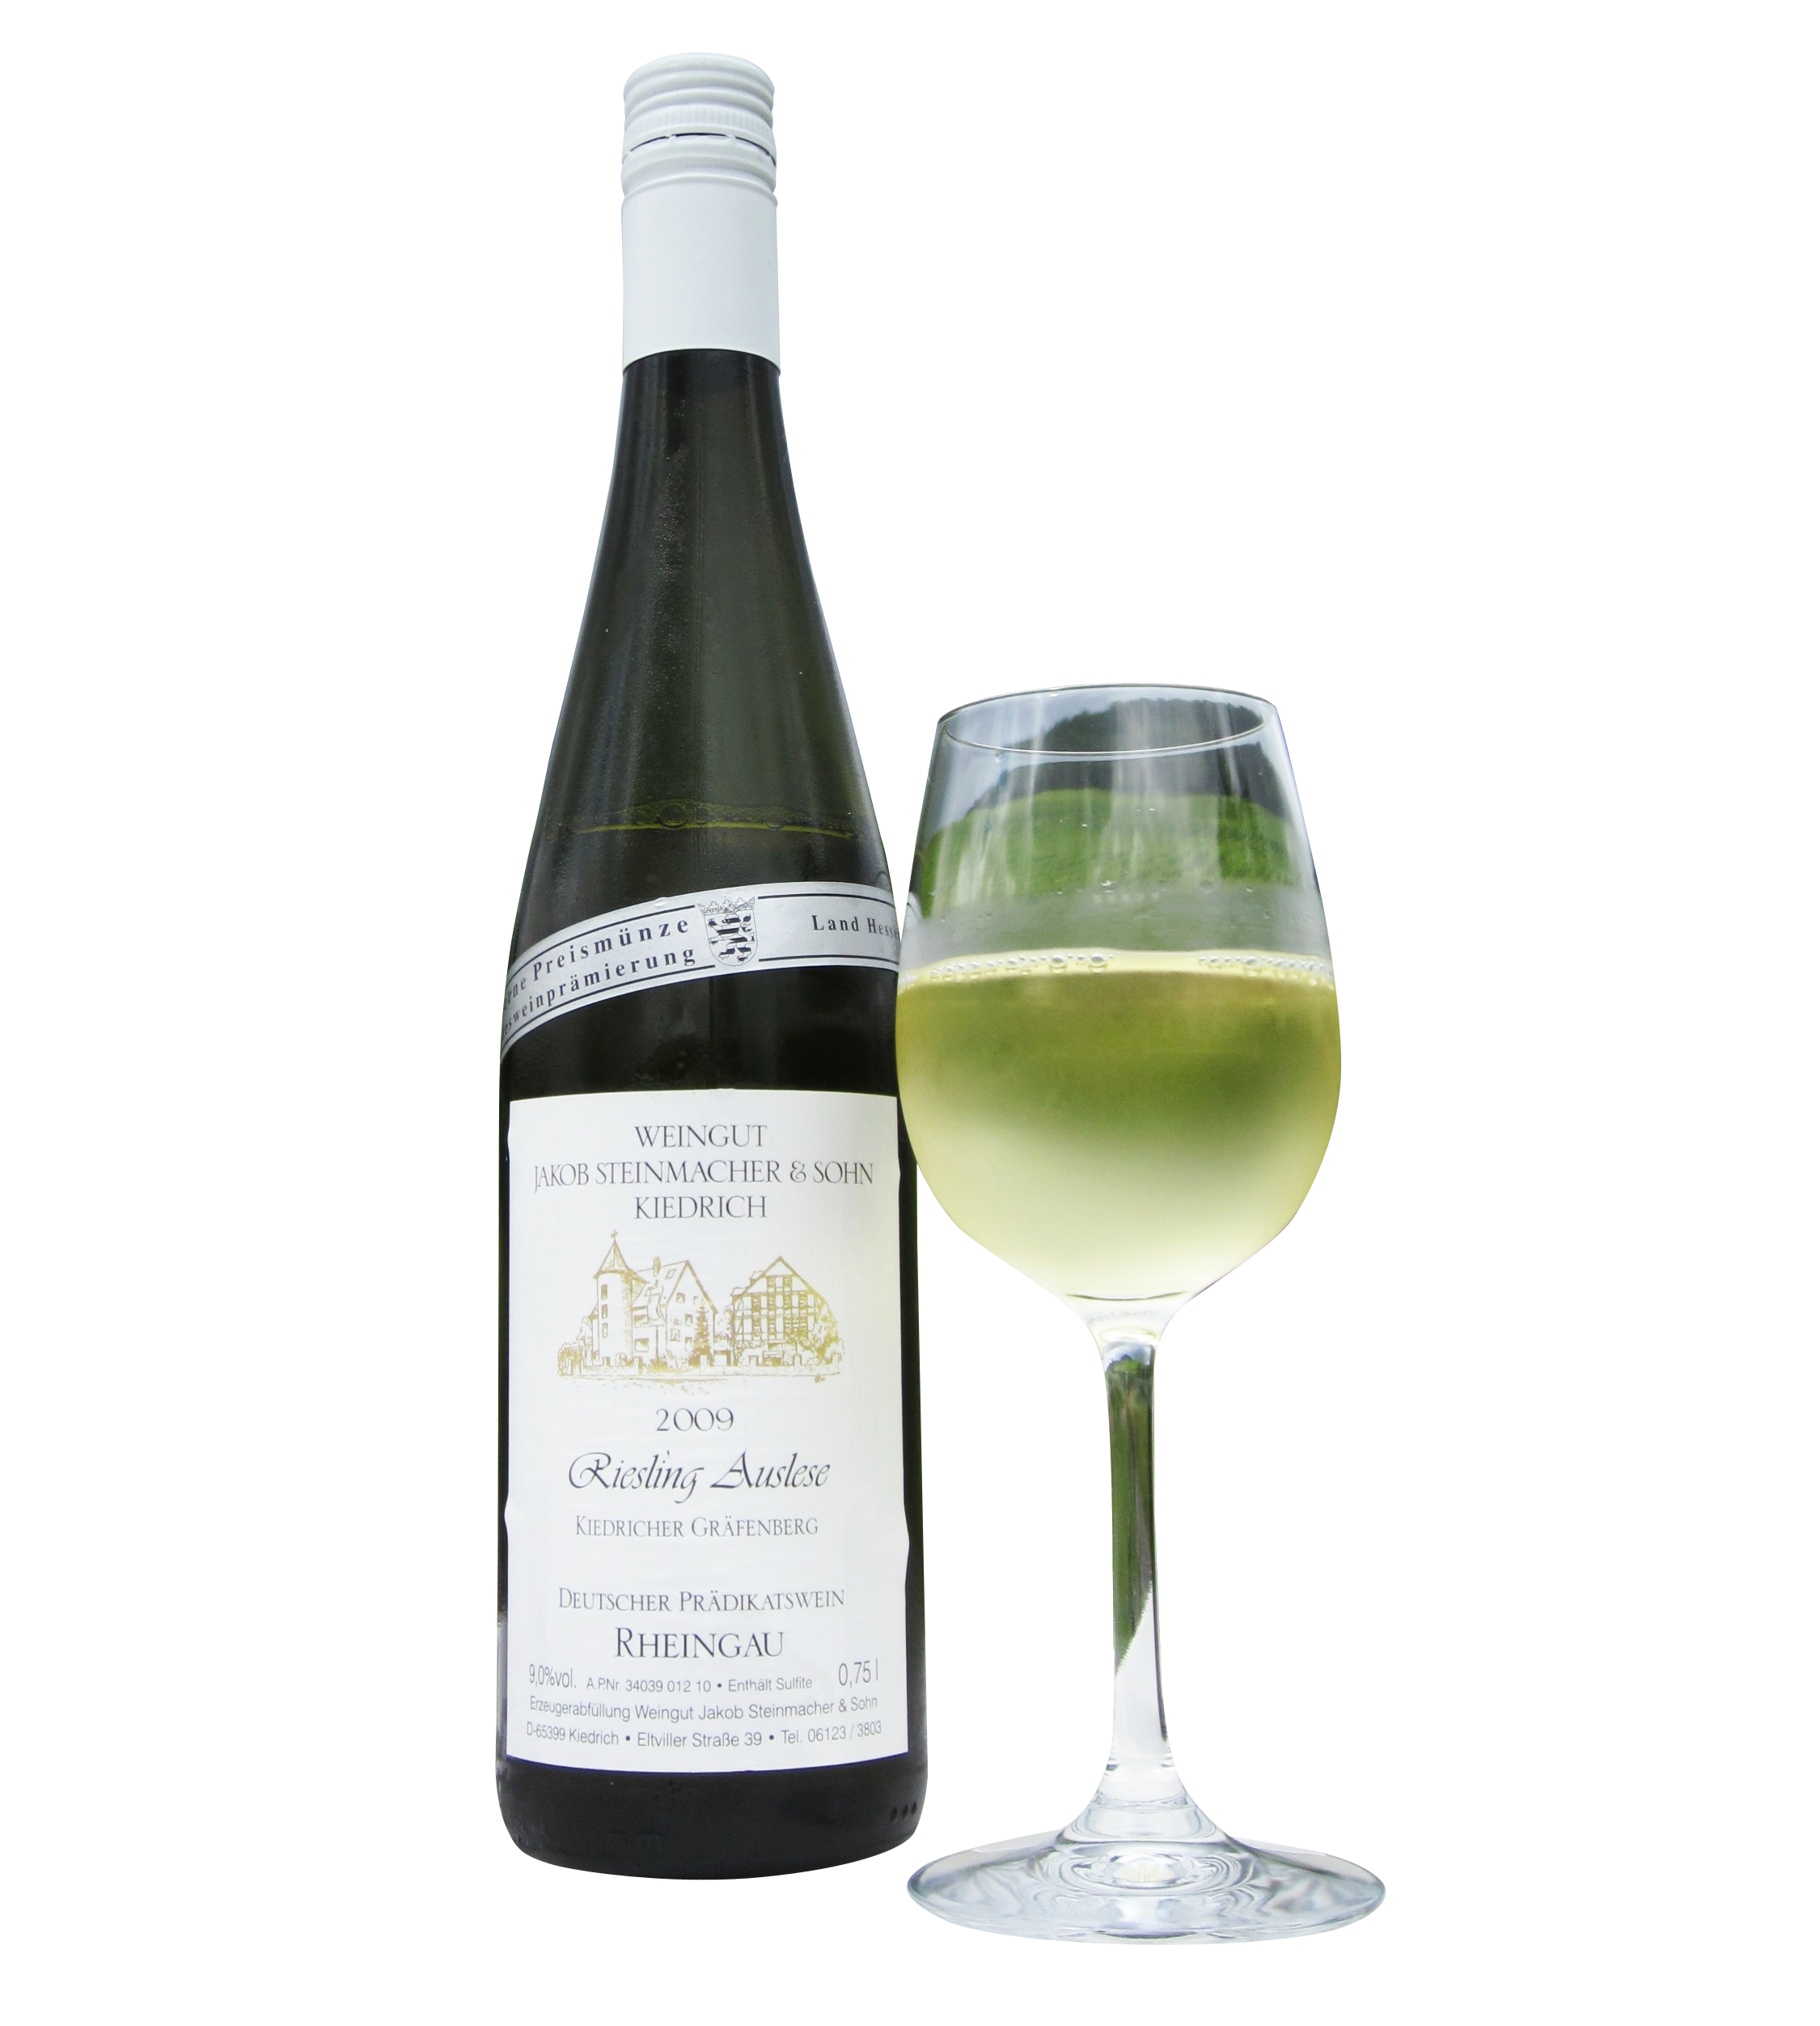 Image purepng free transparent. Wine bottle and glass png